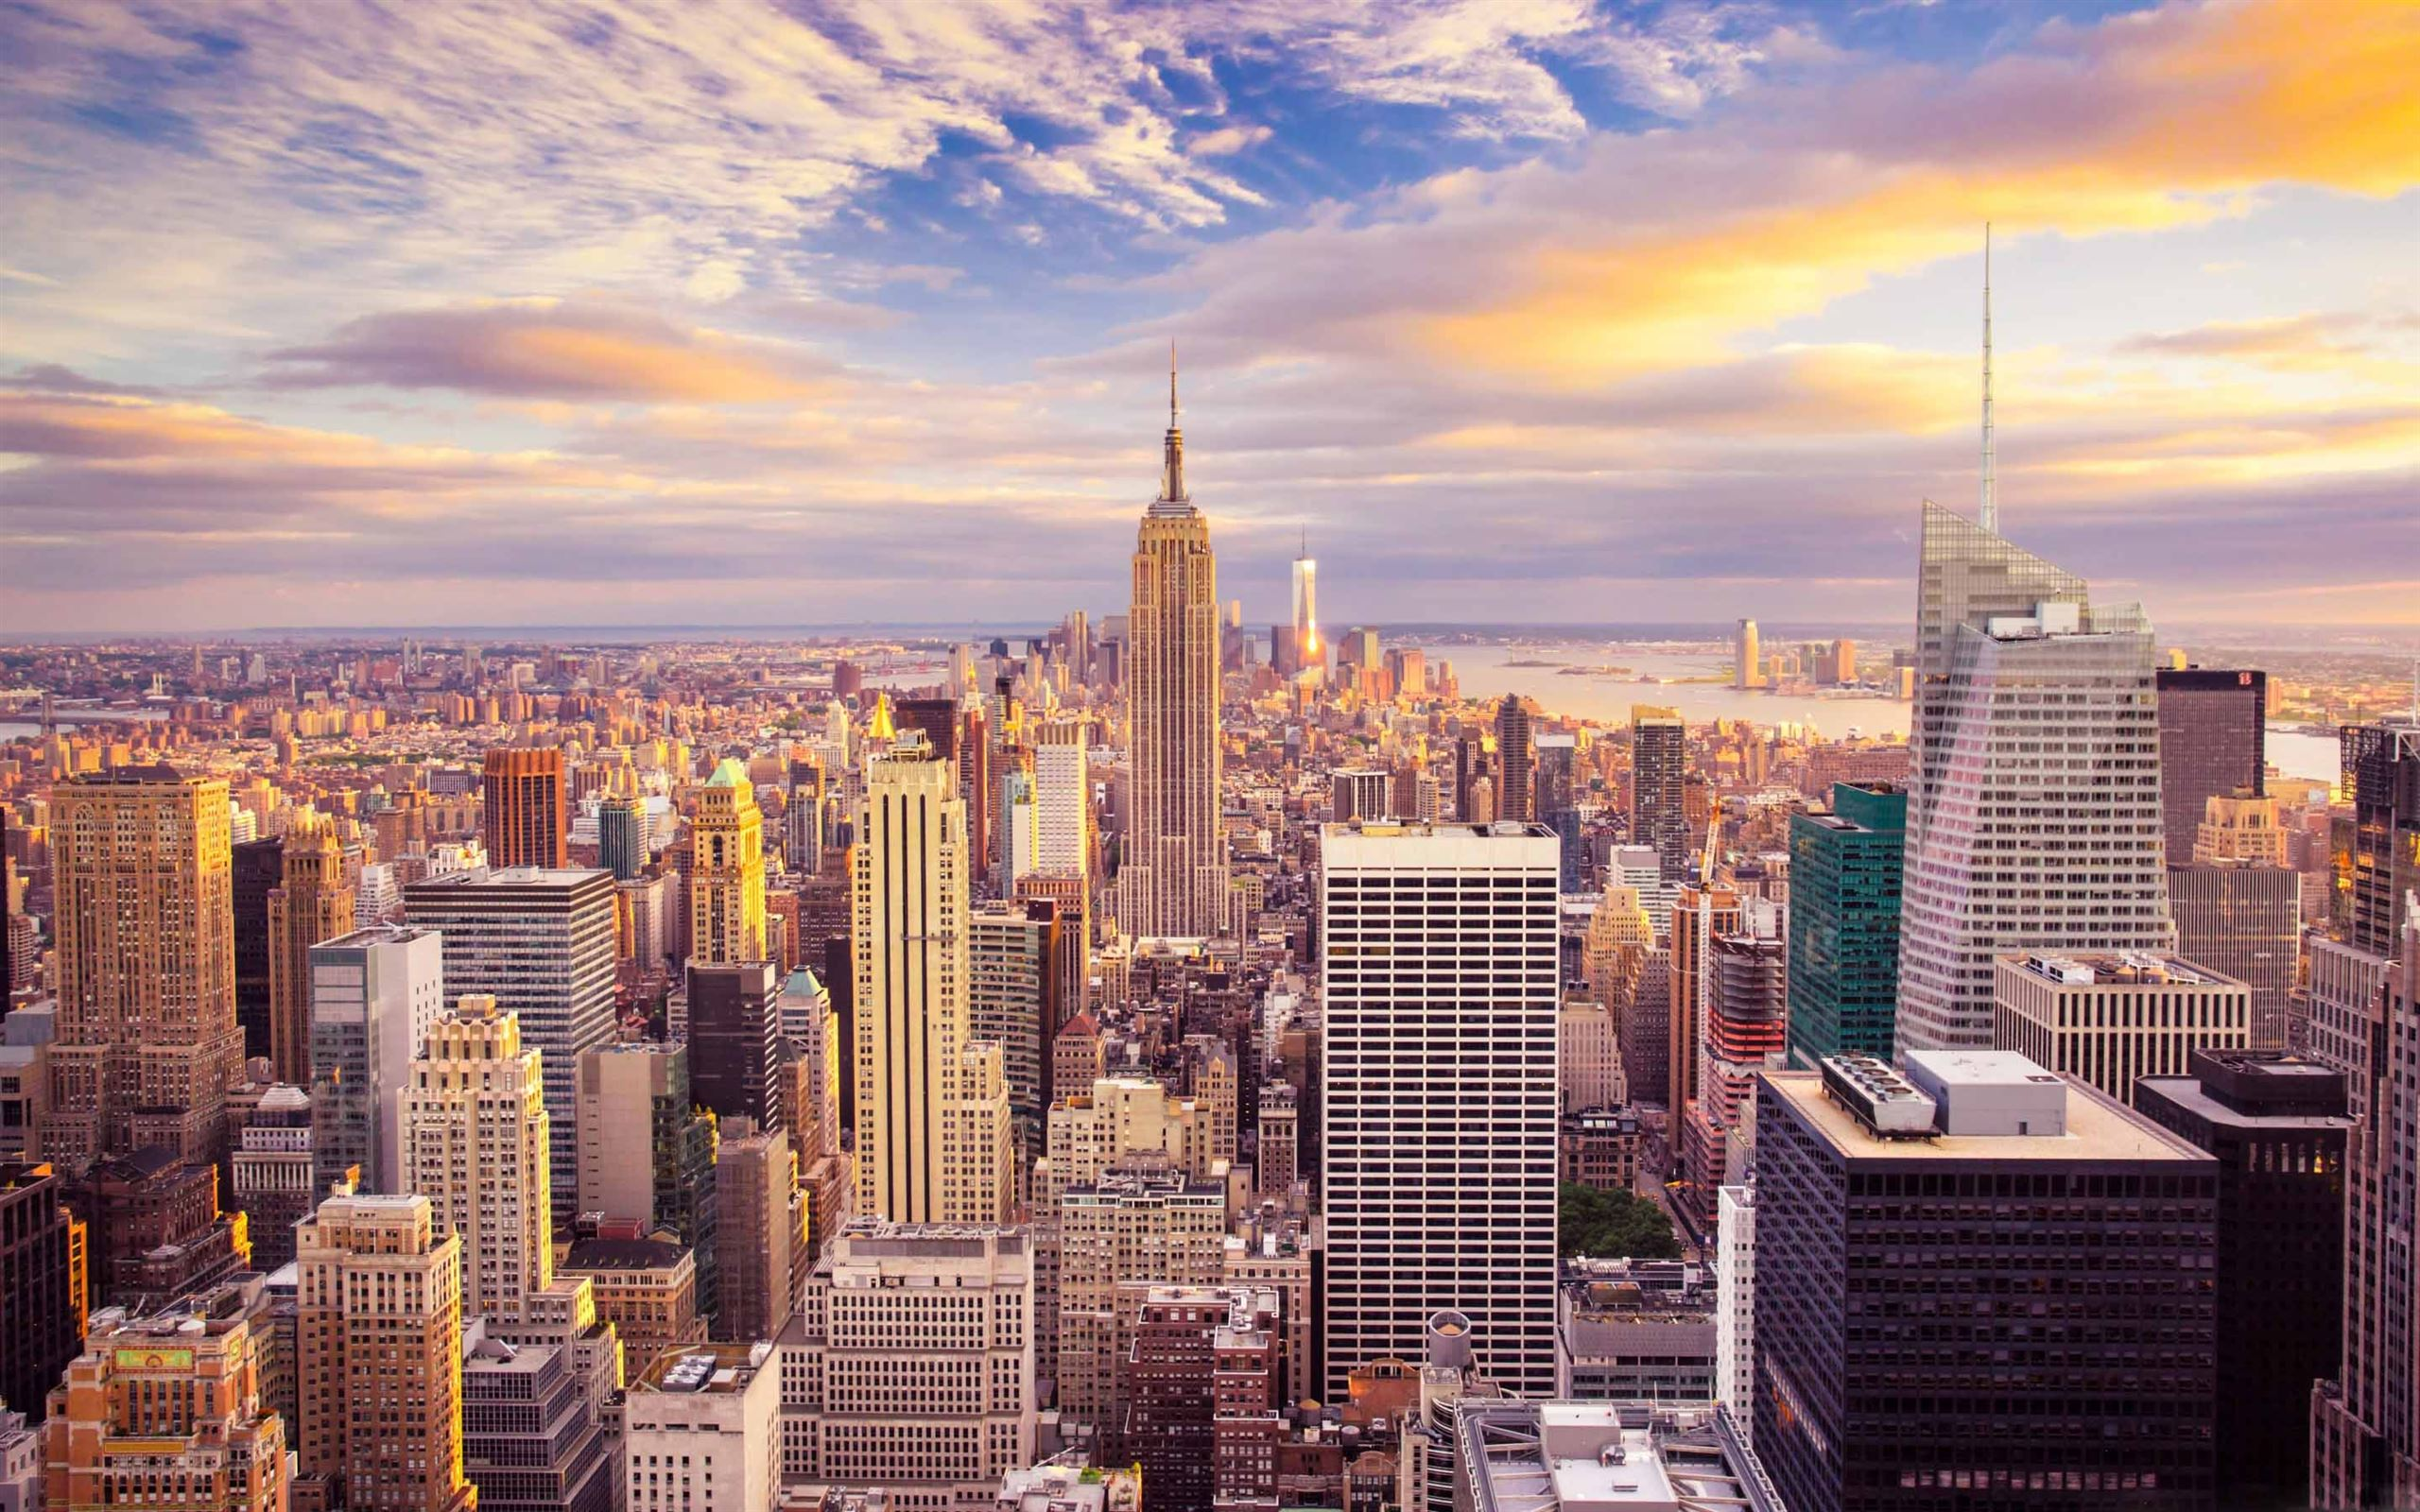 New York City Building Macbook Air Wallpaper Download